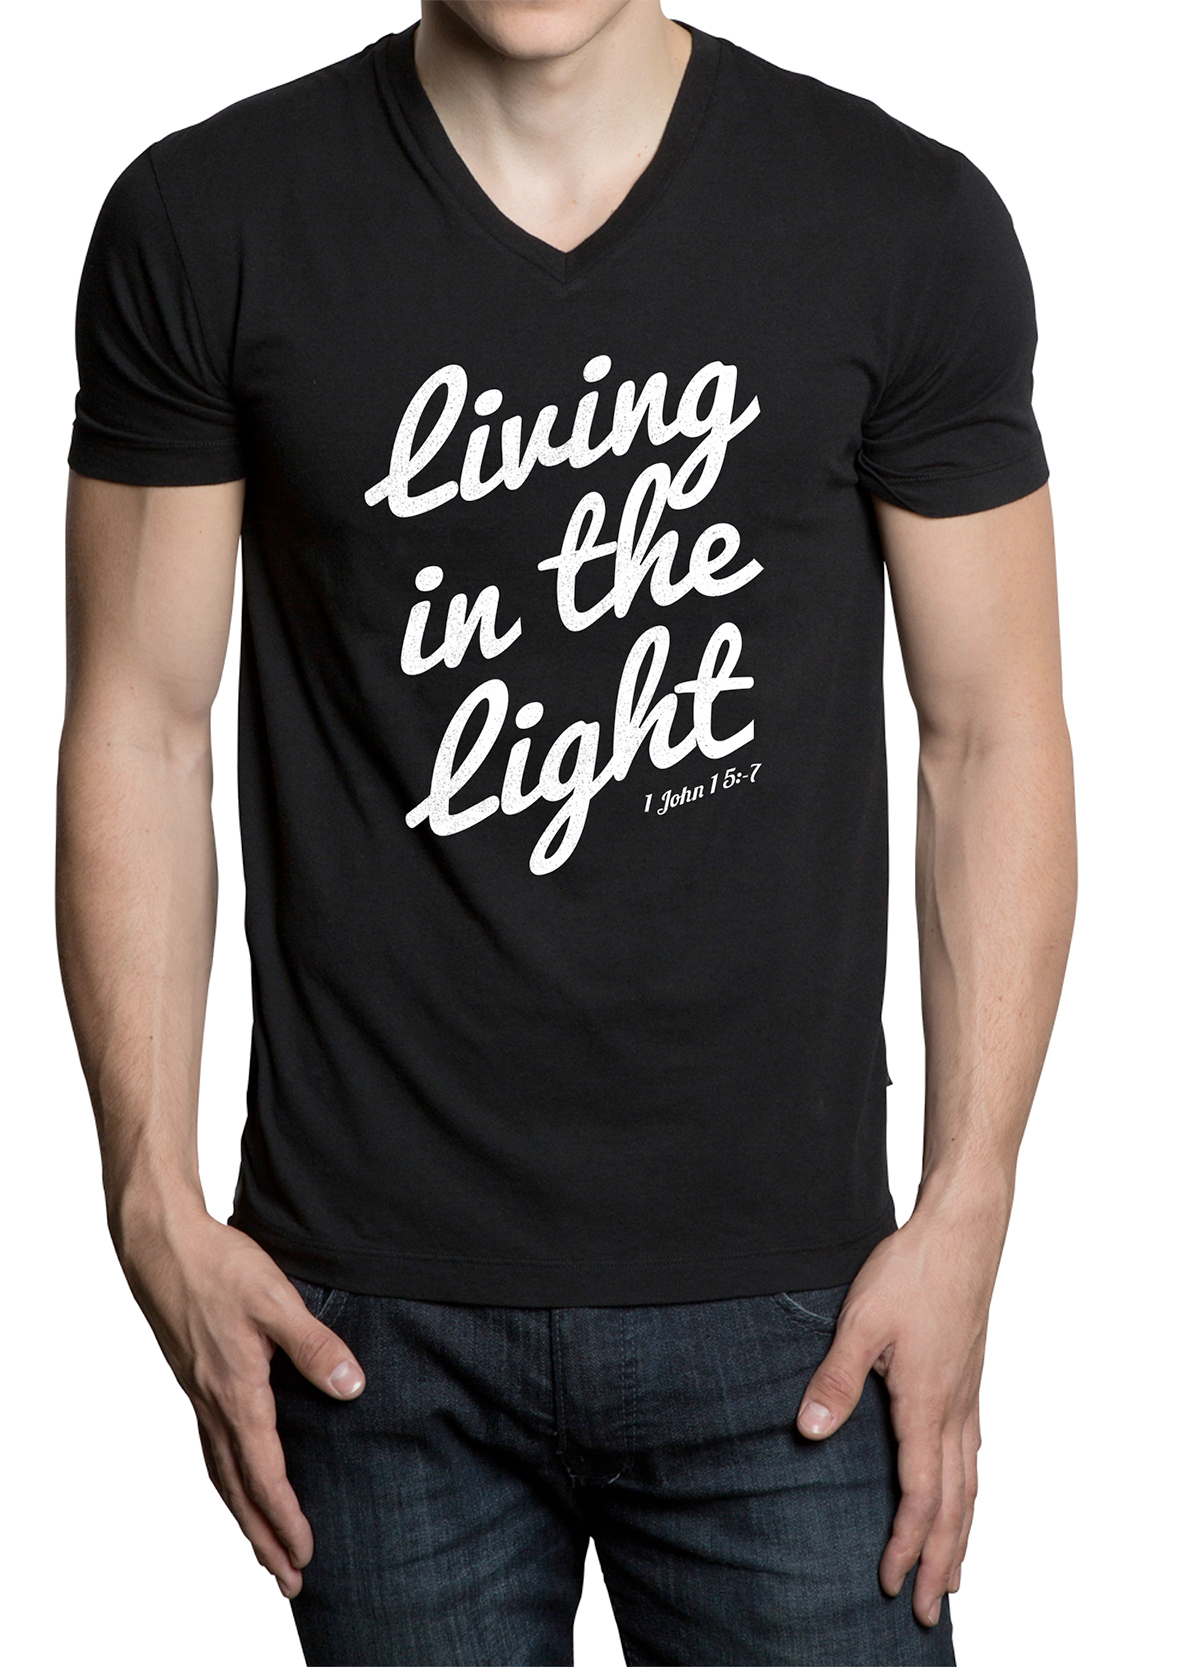 T-Shirt Designs | Seed Clothing on Behance